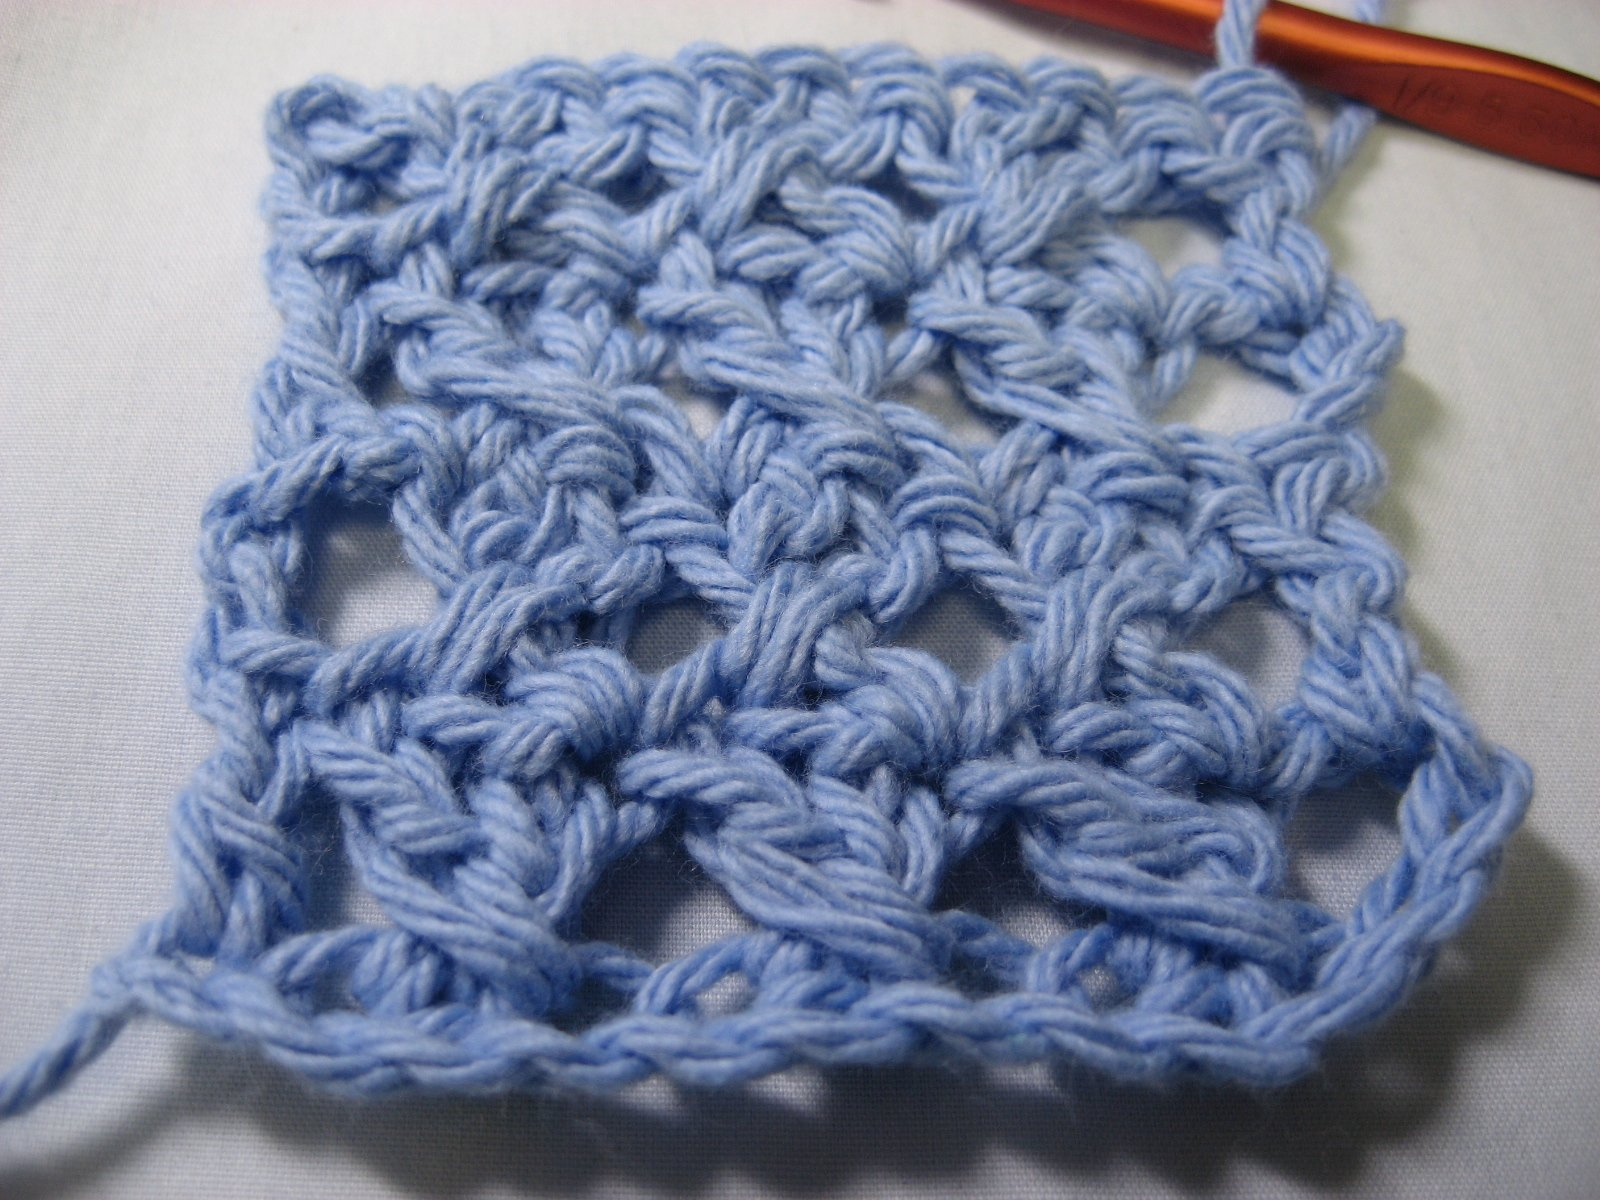 Crocheting Double Stitch : ... crochet stitch for a scarf or wrap with its lacy look and pretty